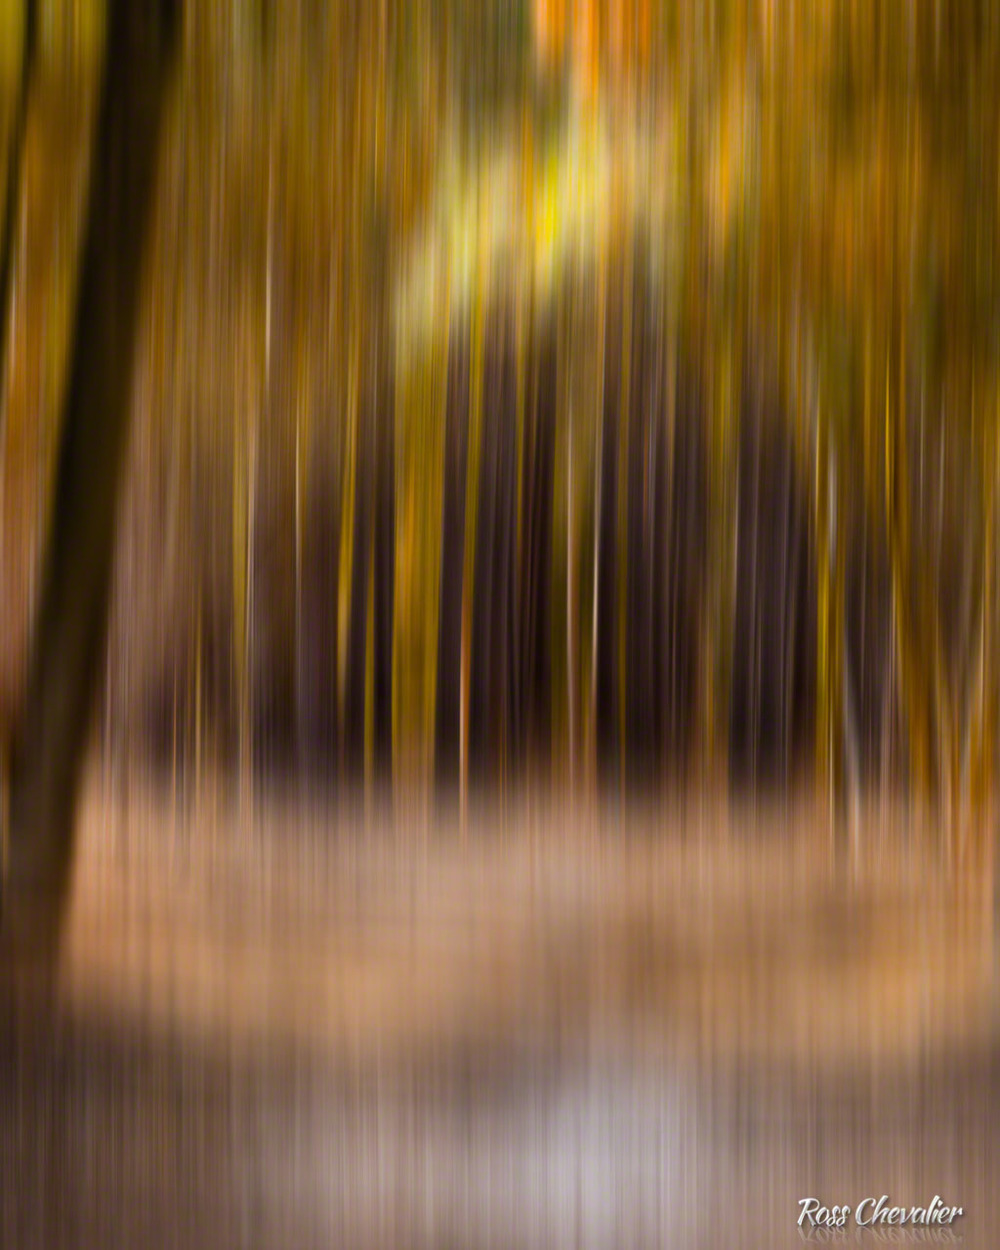 Creative blur is just one of the techniques that we will explore